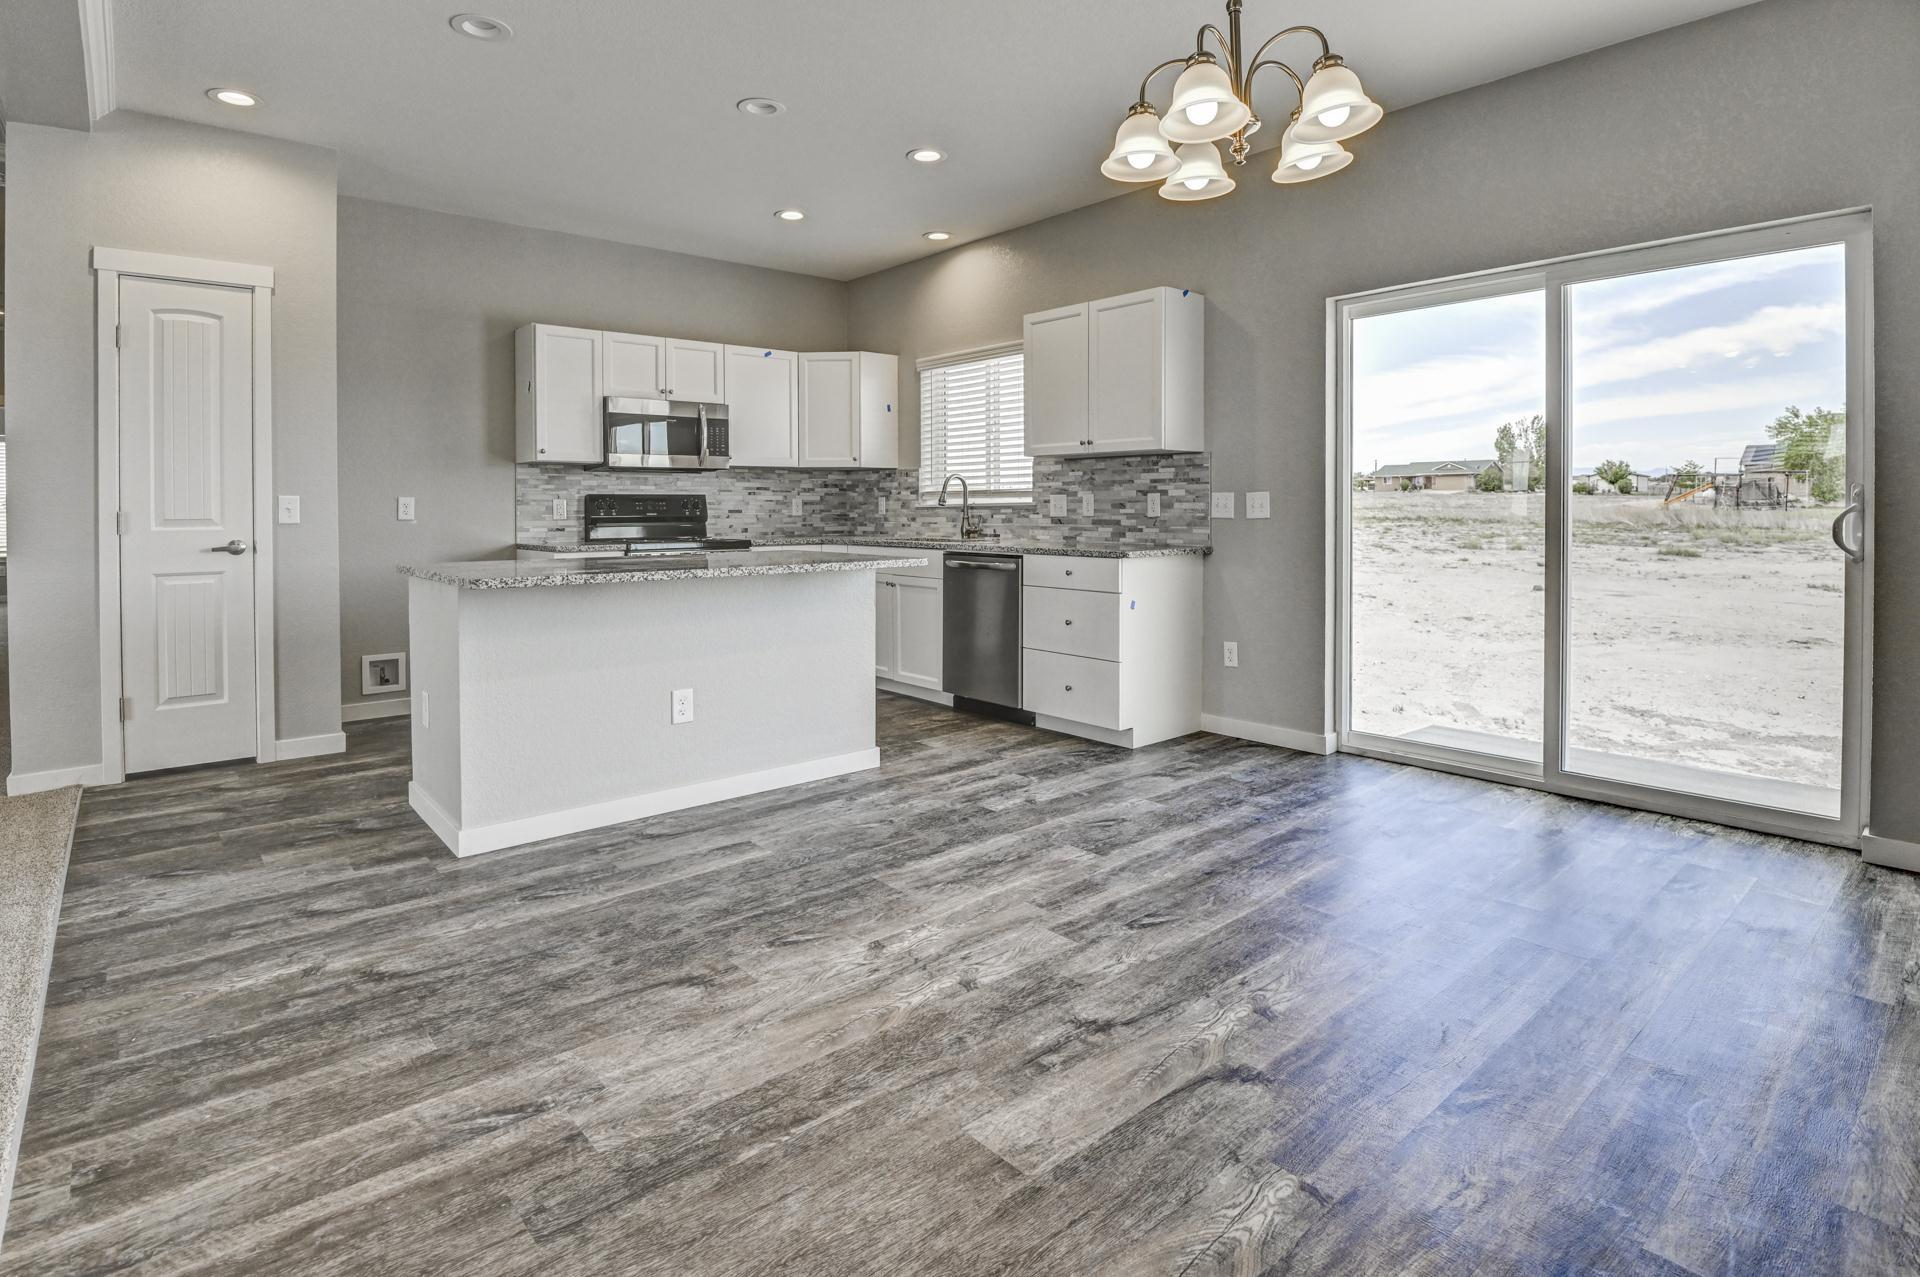 Kitchen featured in the Harmony By Westover Homes in Colorado Springs, CO